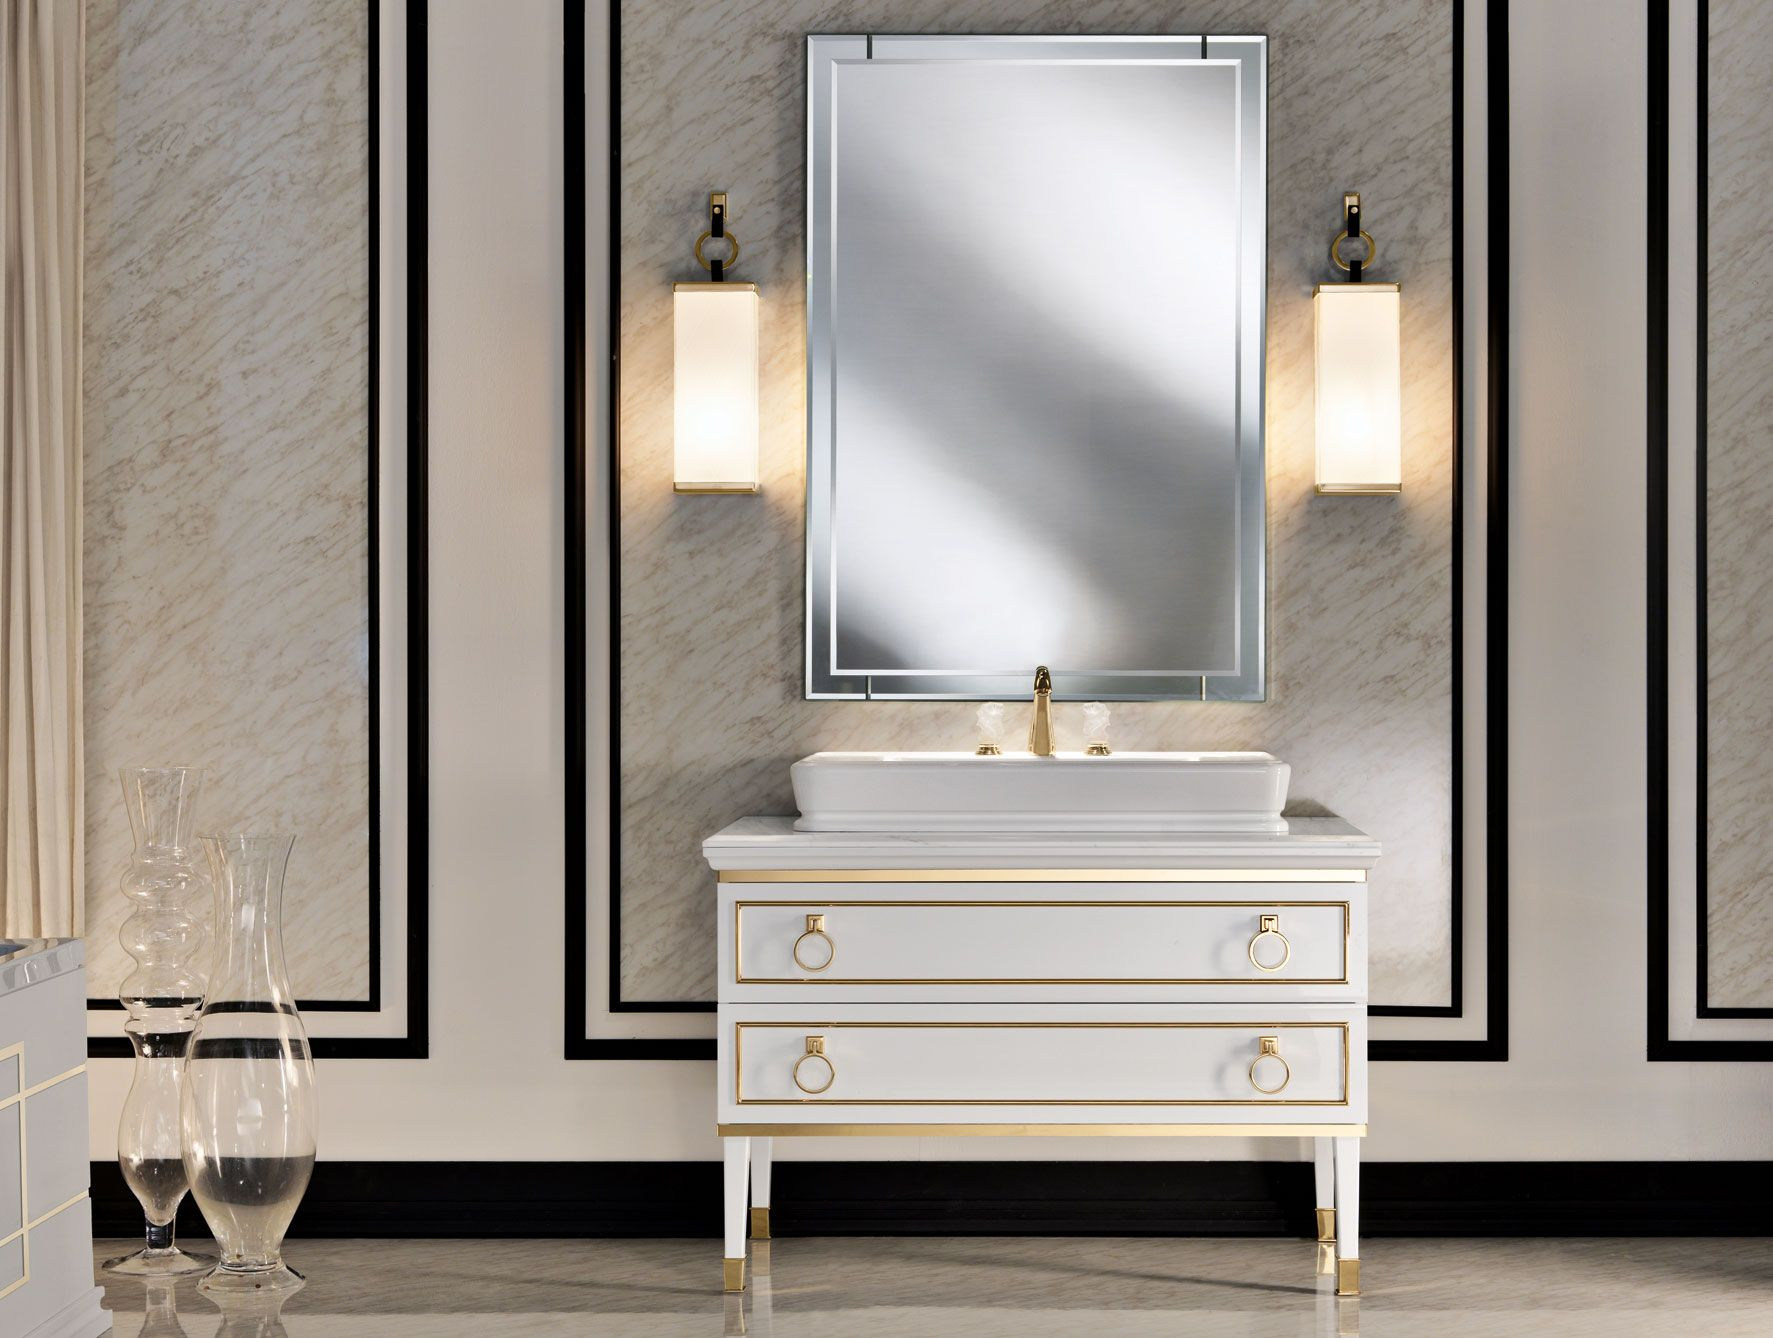 Bathroom Vanity Manufacturers Single Washbasin Vanities For Bathroom With  Double Tube Wall Light And Rectangular Mirror Cool Lights Vanity Ideas For  ...